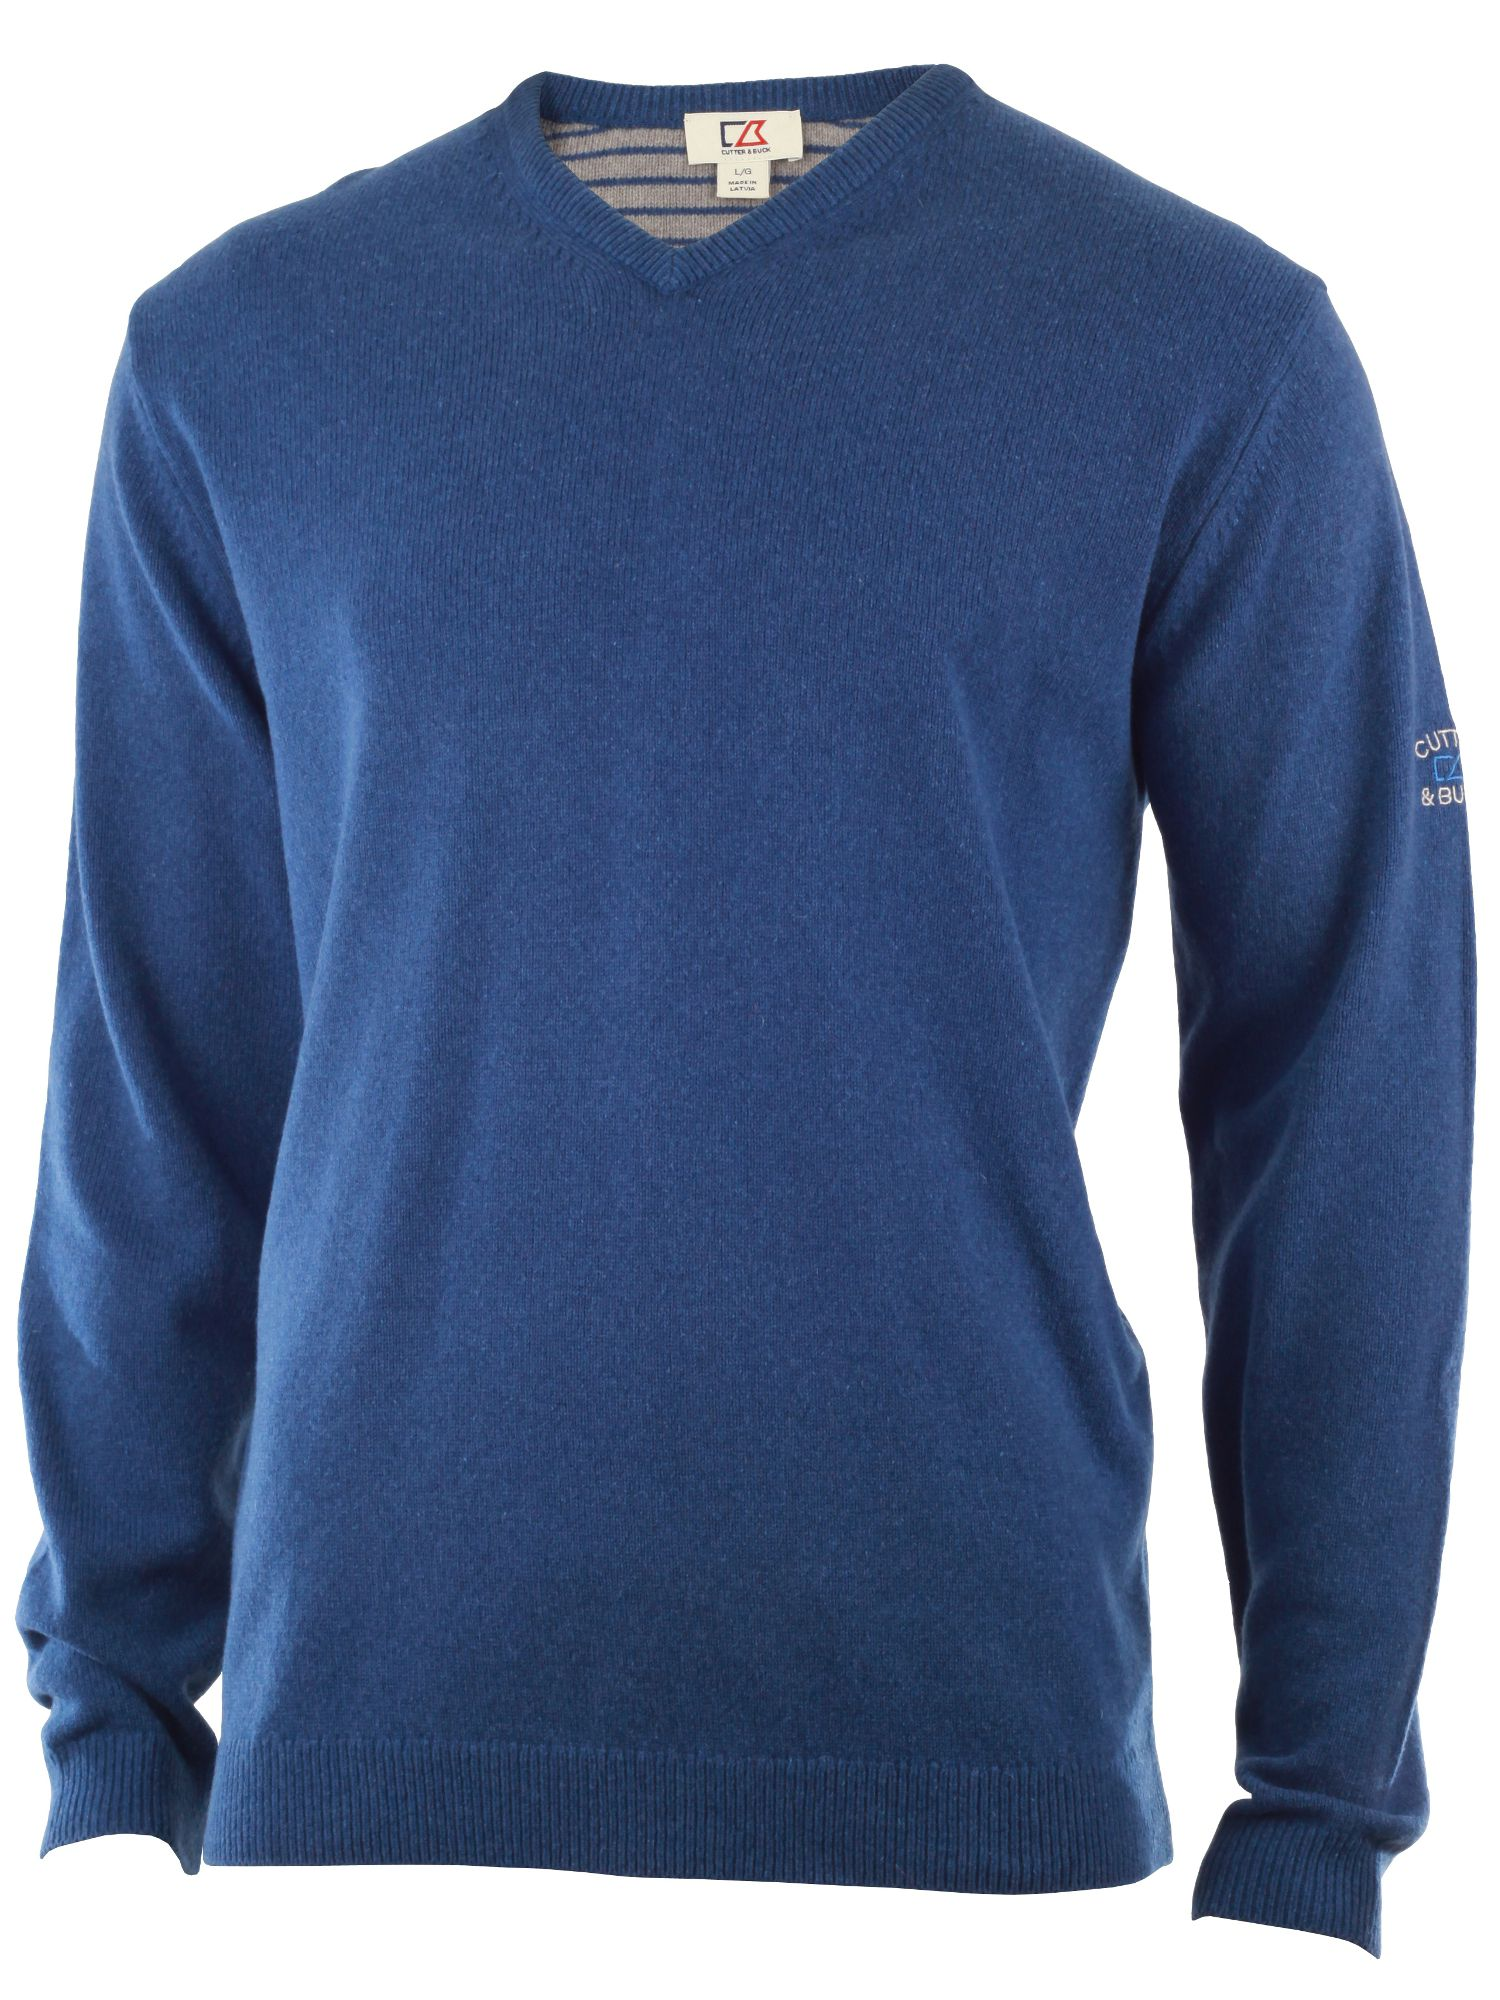 Cutter and Buck Men's Cutter and Buck Lambswool v neck sweater, Denim